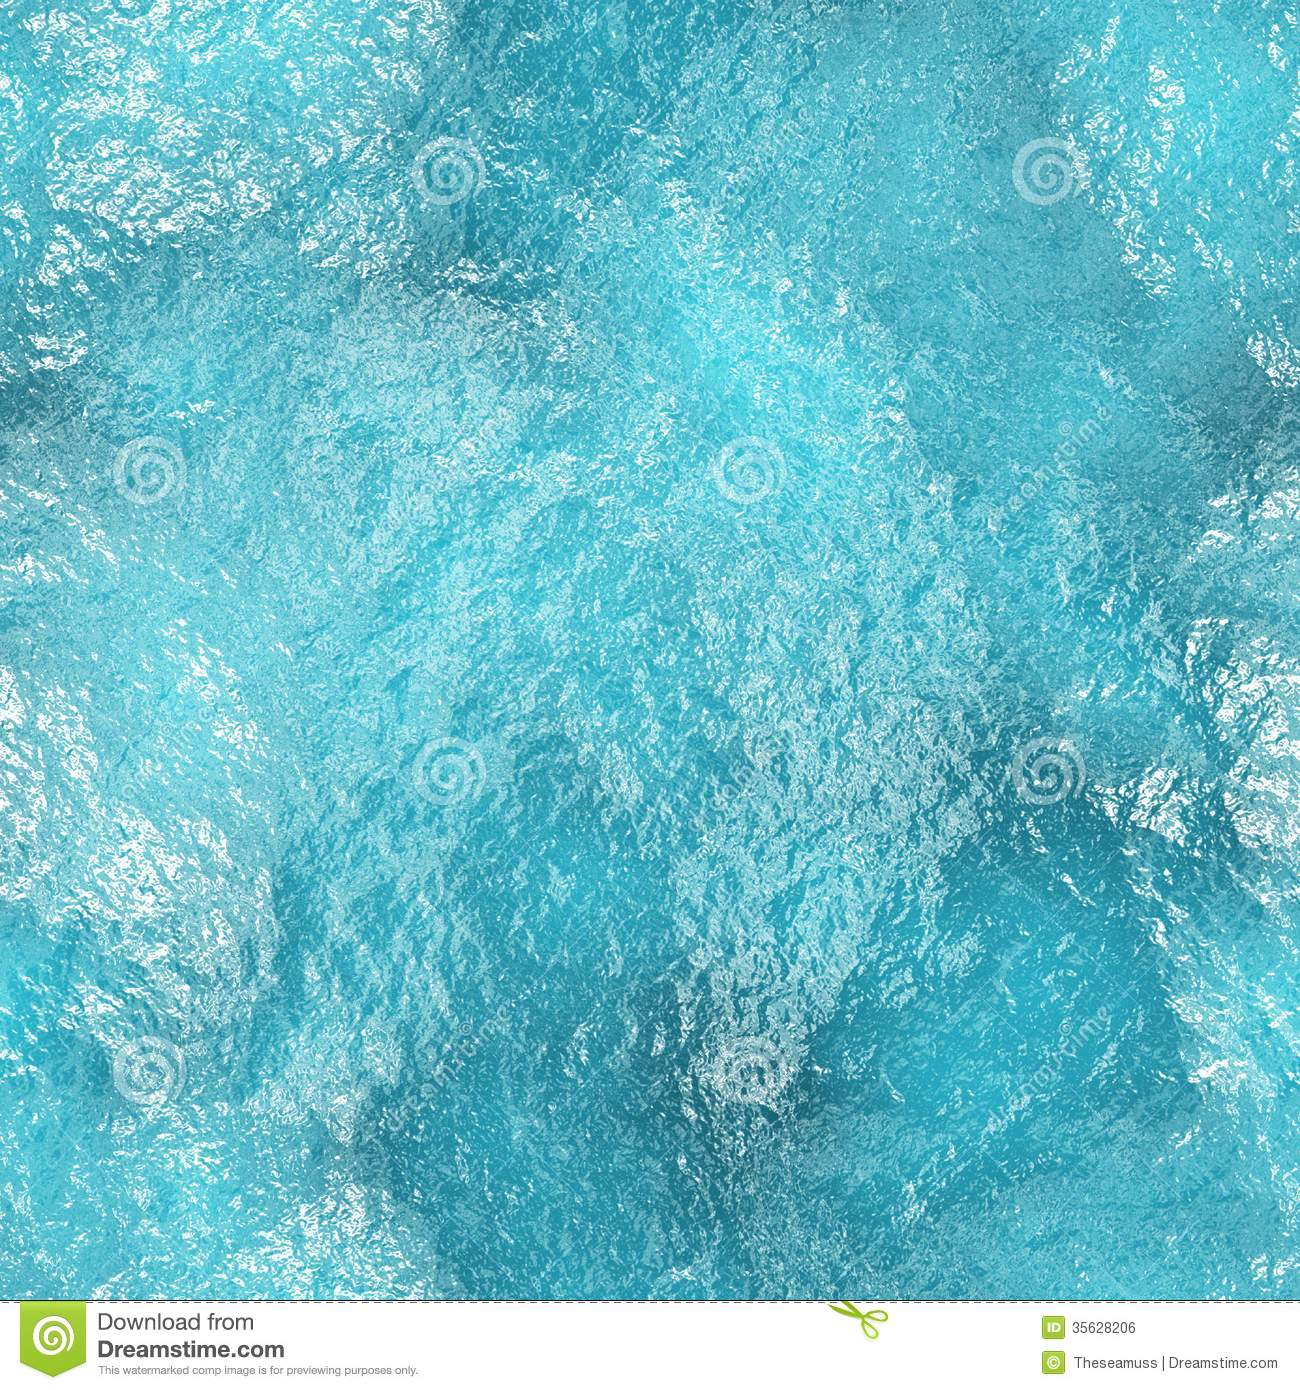 Seamless Water Texture seamless water texture royalty free stock image - image: 35628206